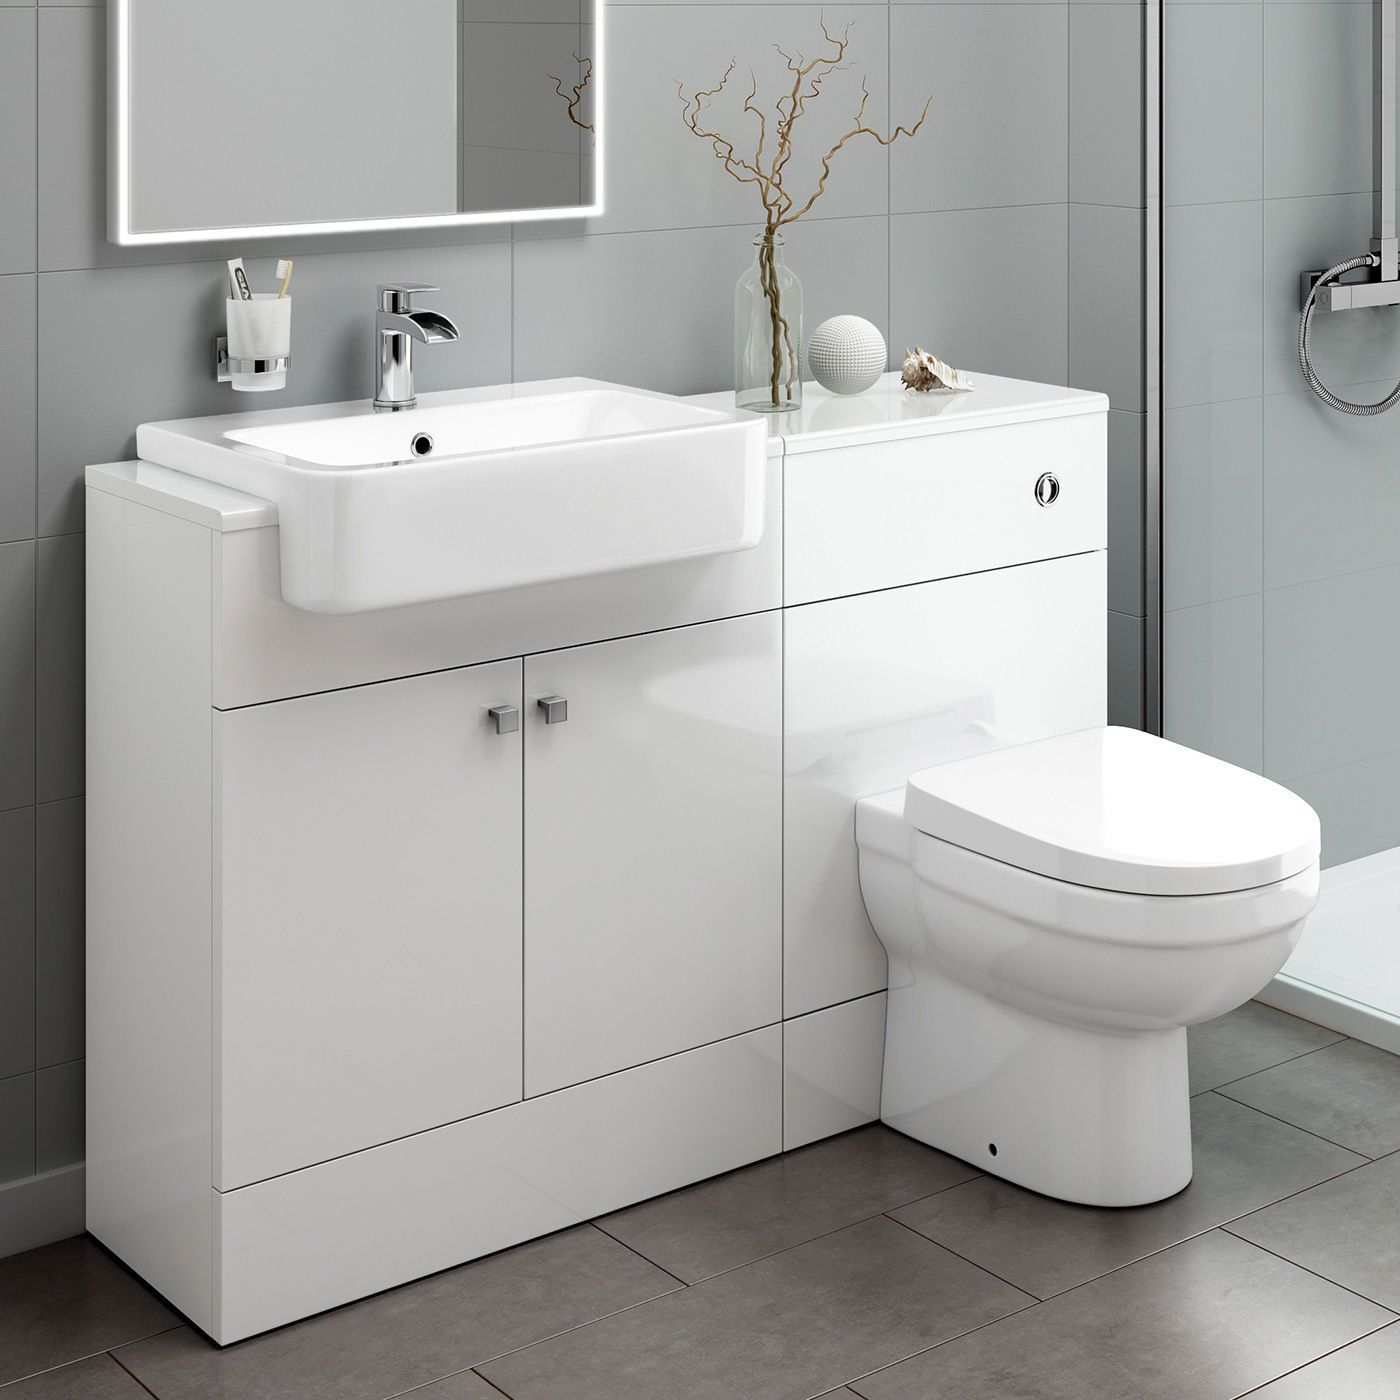 Combined Vanity Storage Unit With Basin And Back To Wall throughout size 1400 X 1400